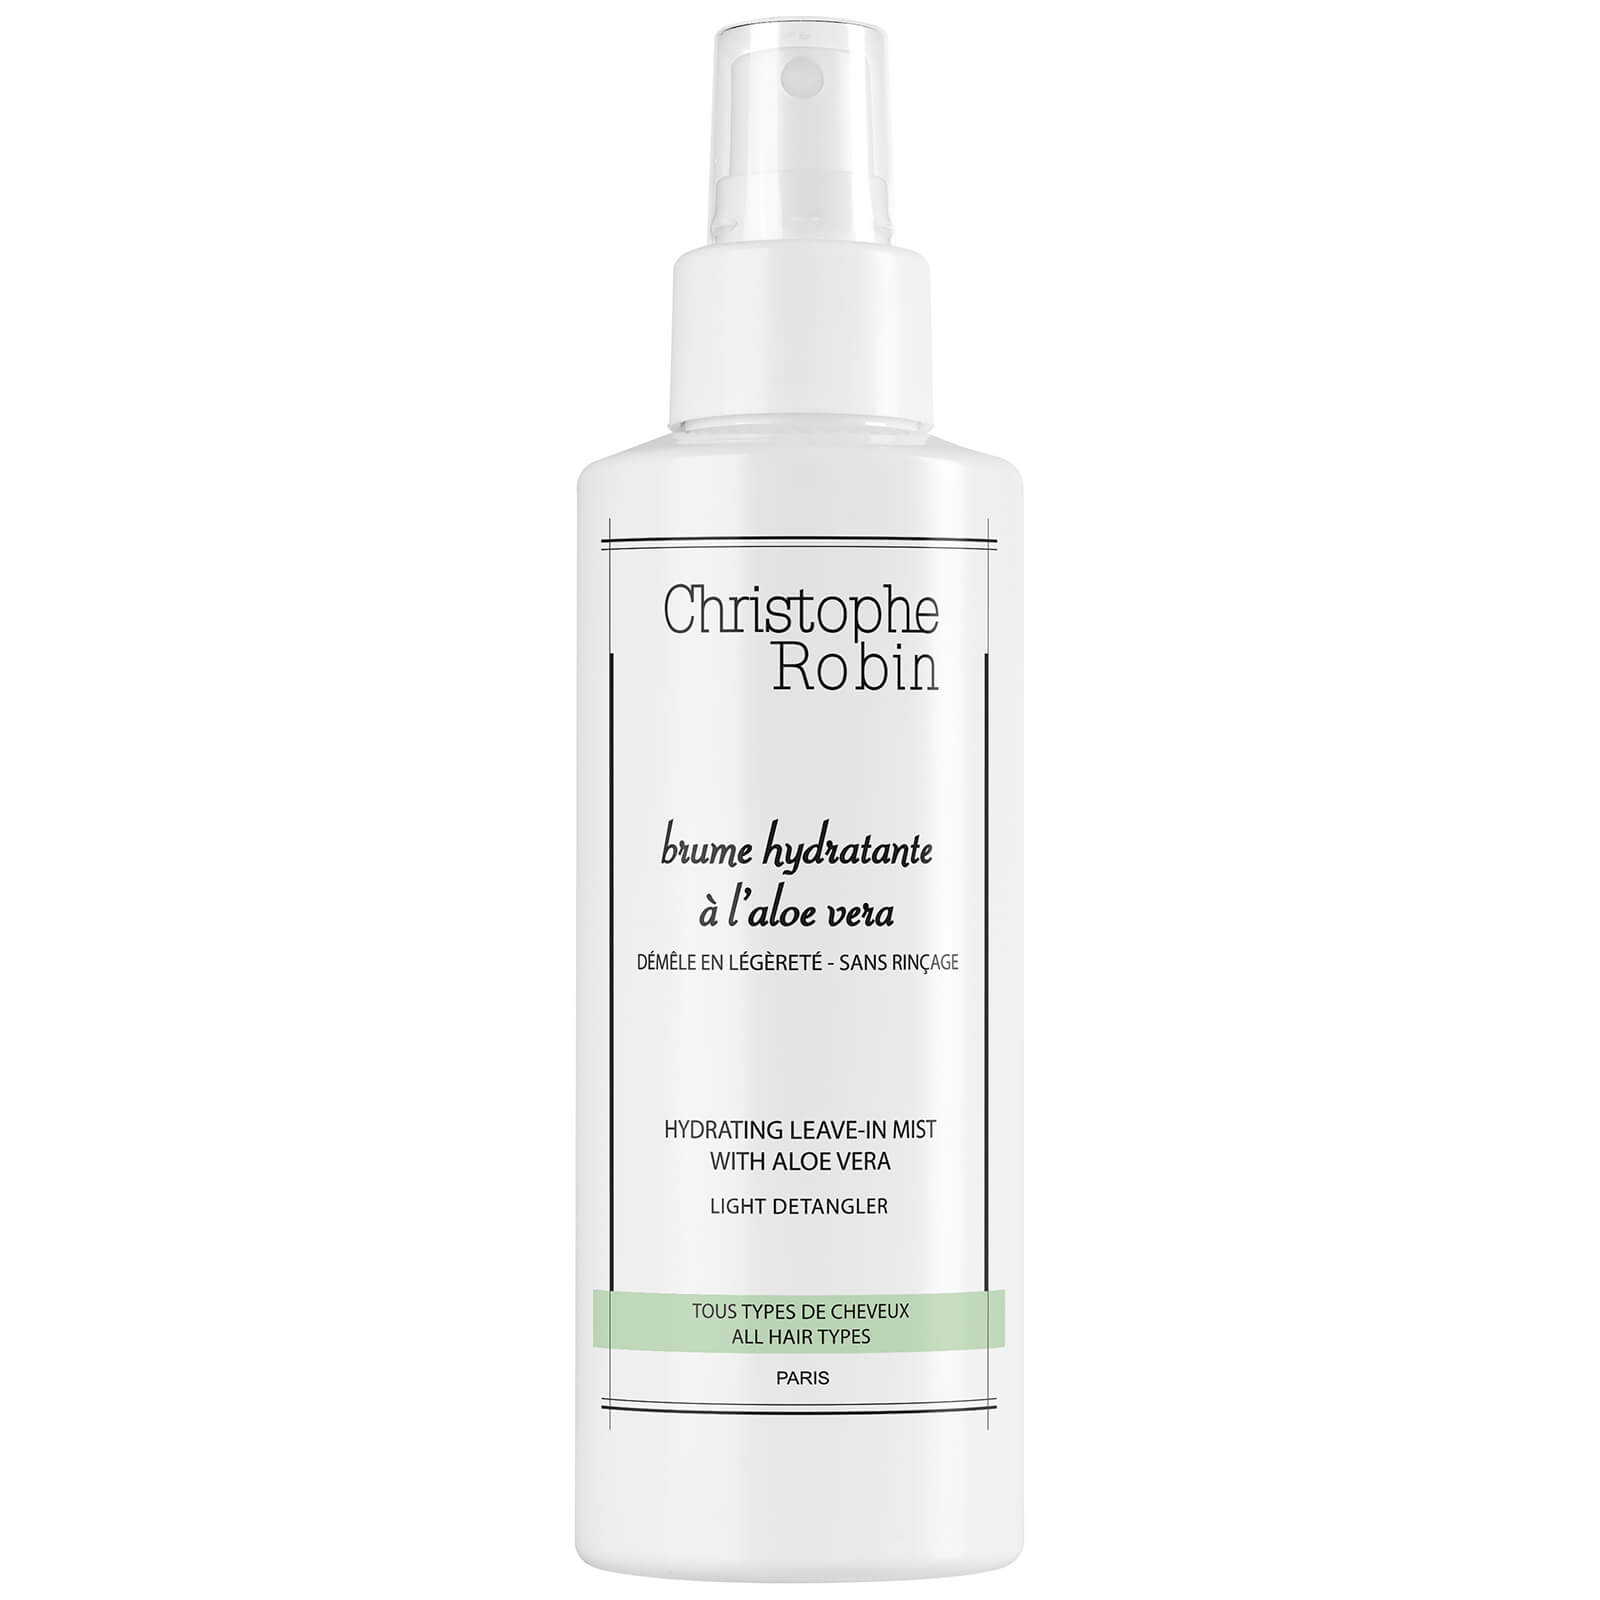 Christophe Robin Hydrating Leave-In Mist with Aloe Vera 150ml